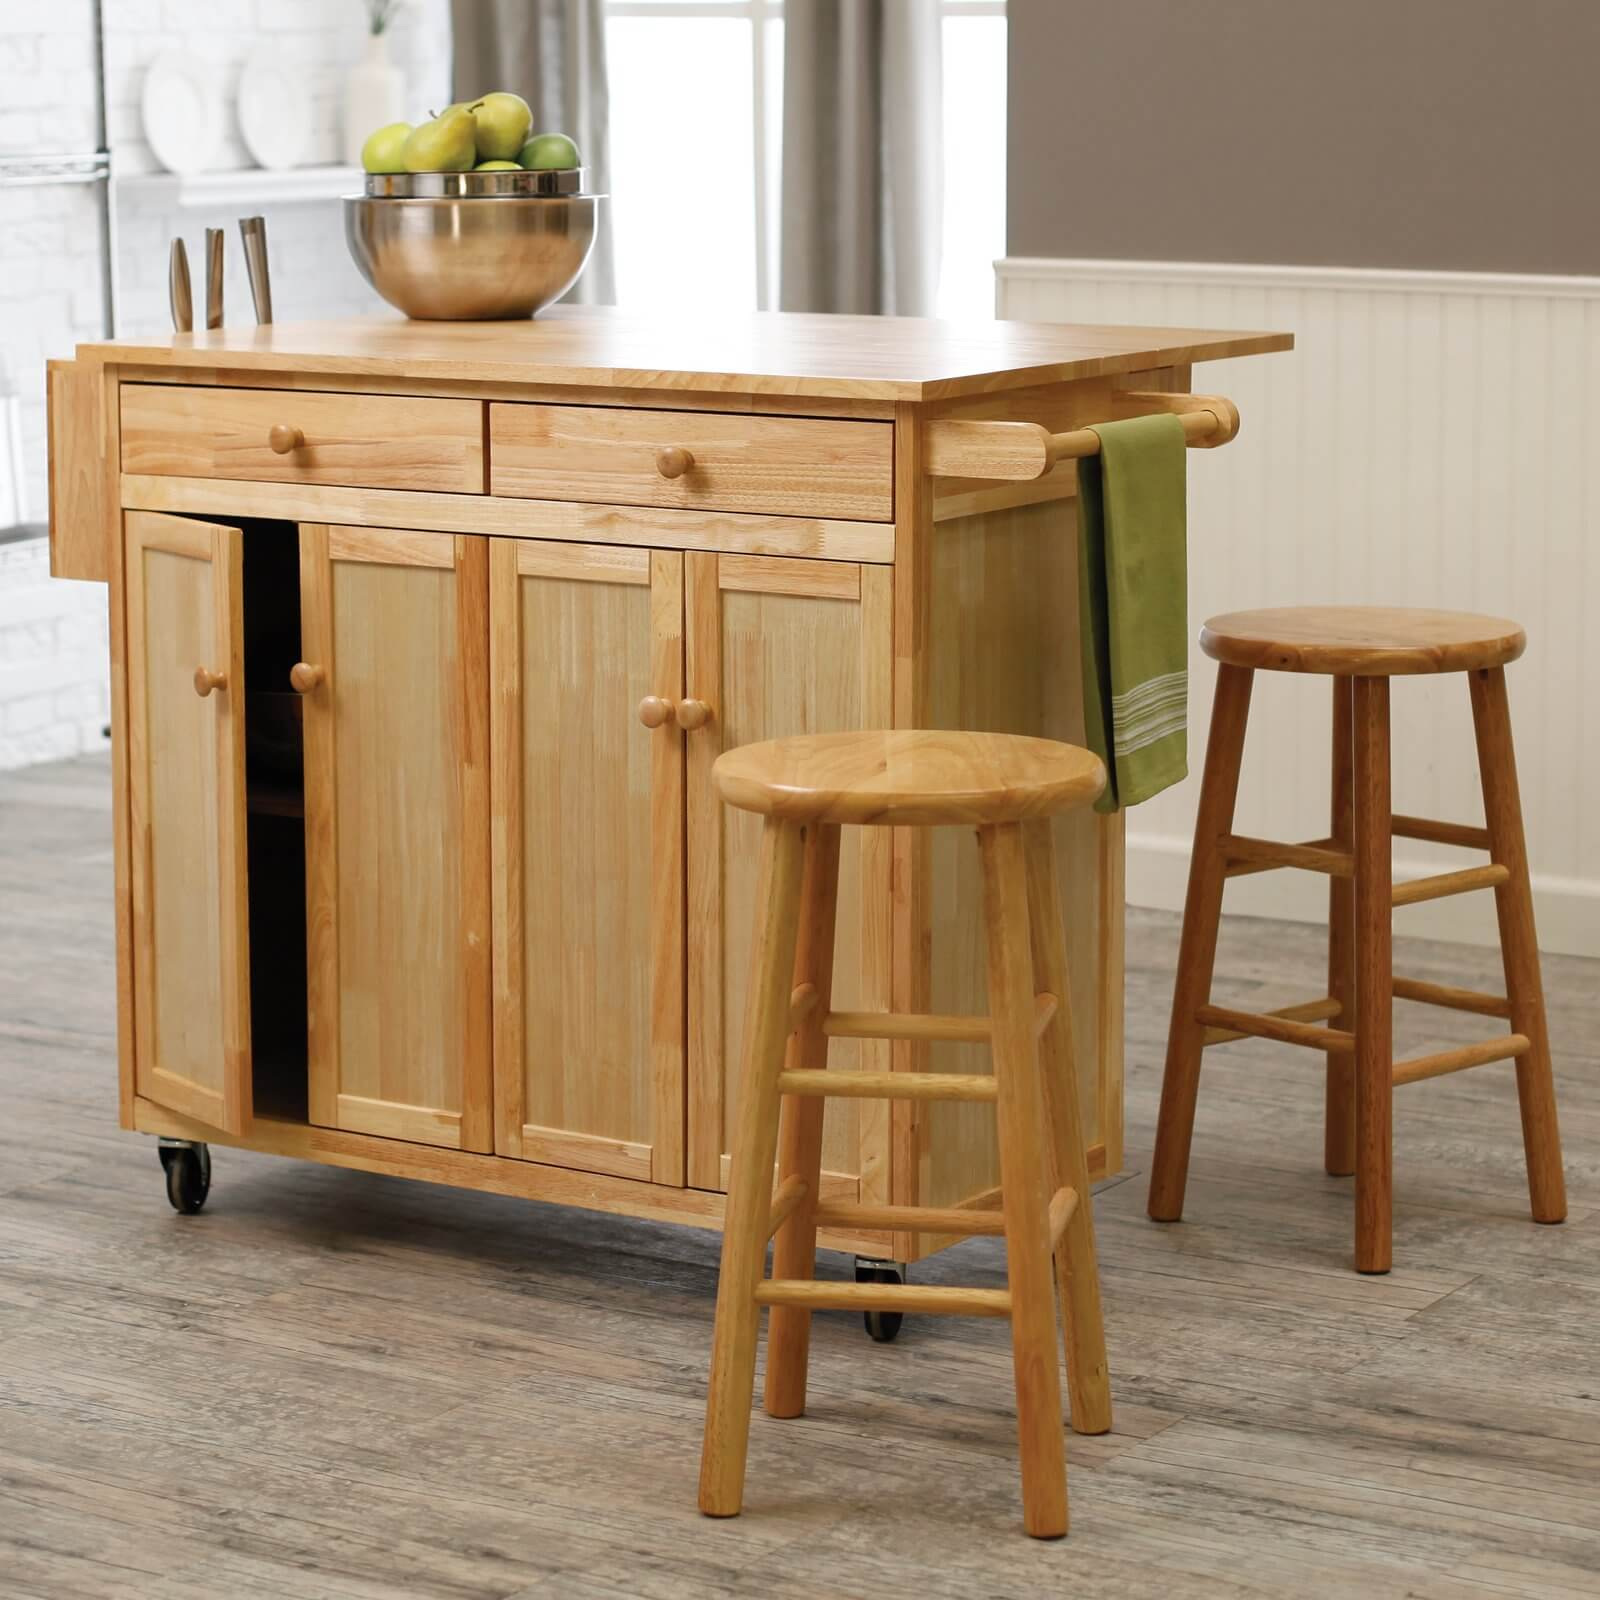 portable kitchen island with seating 10 types of small kitchen islands on wheels 5617